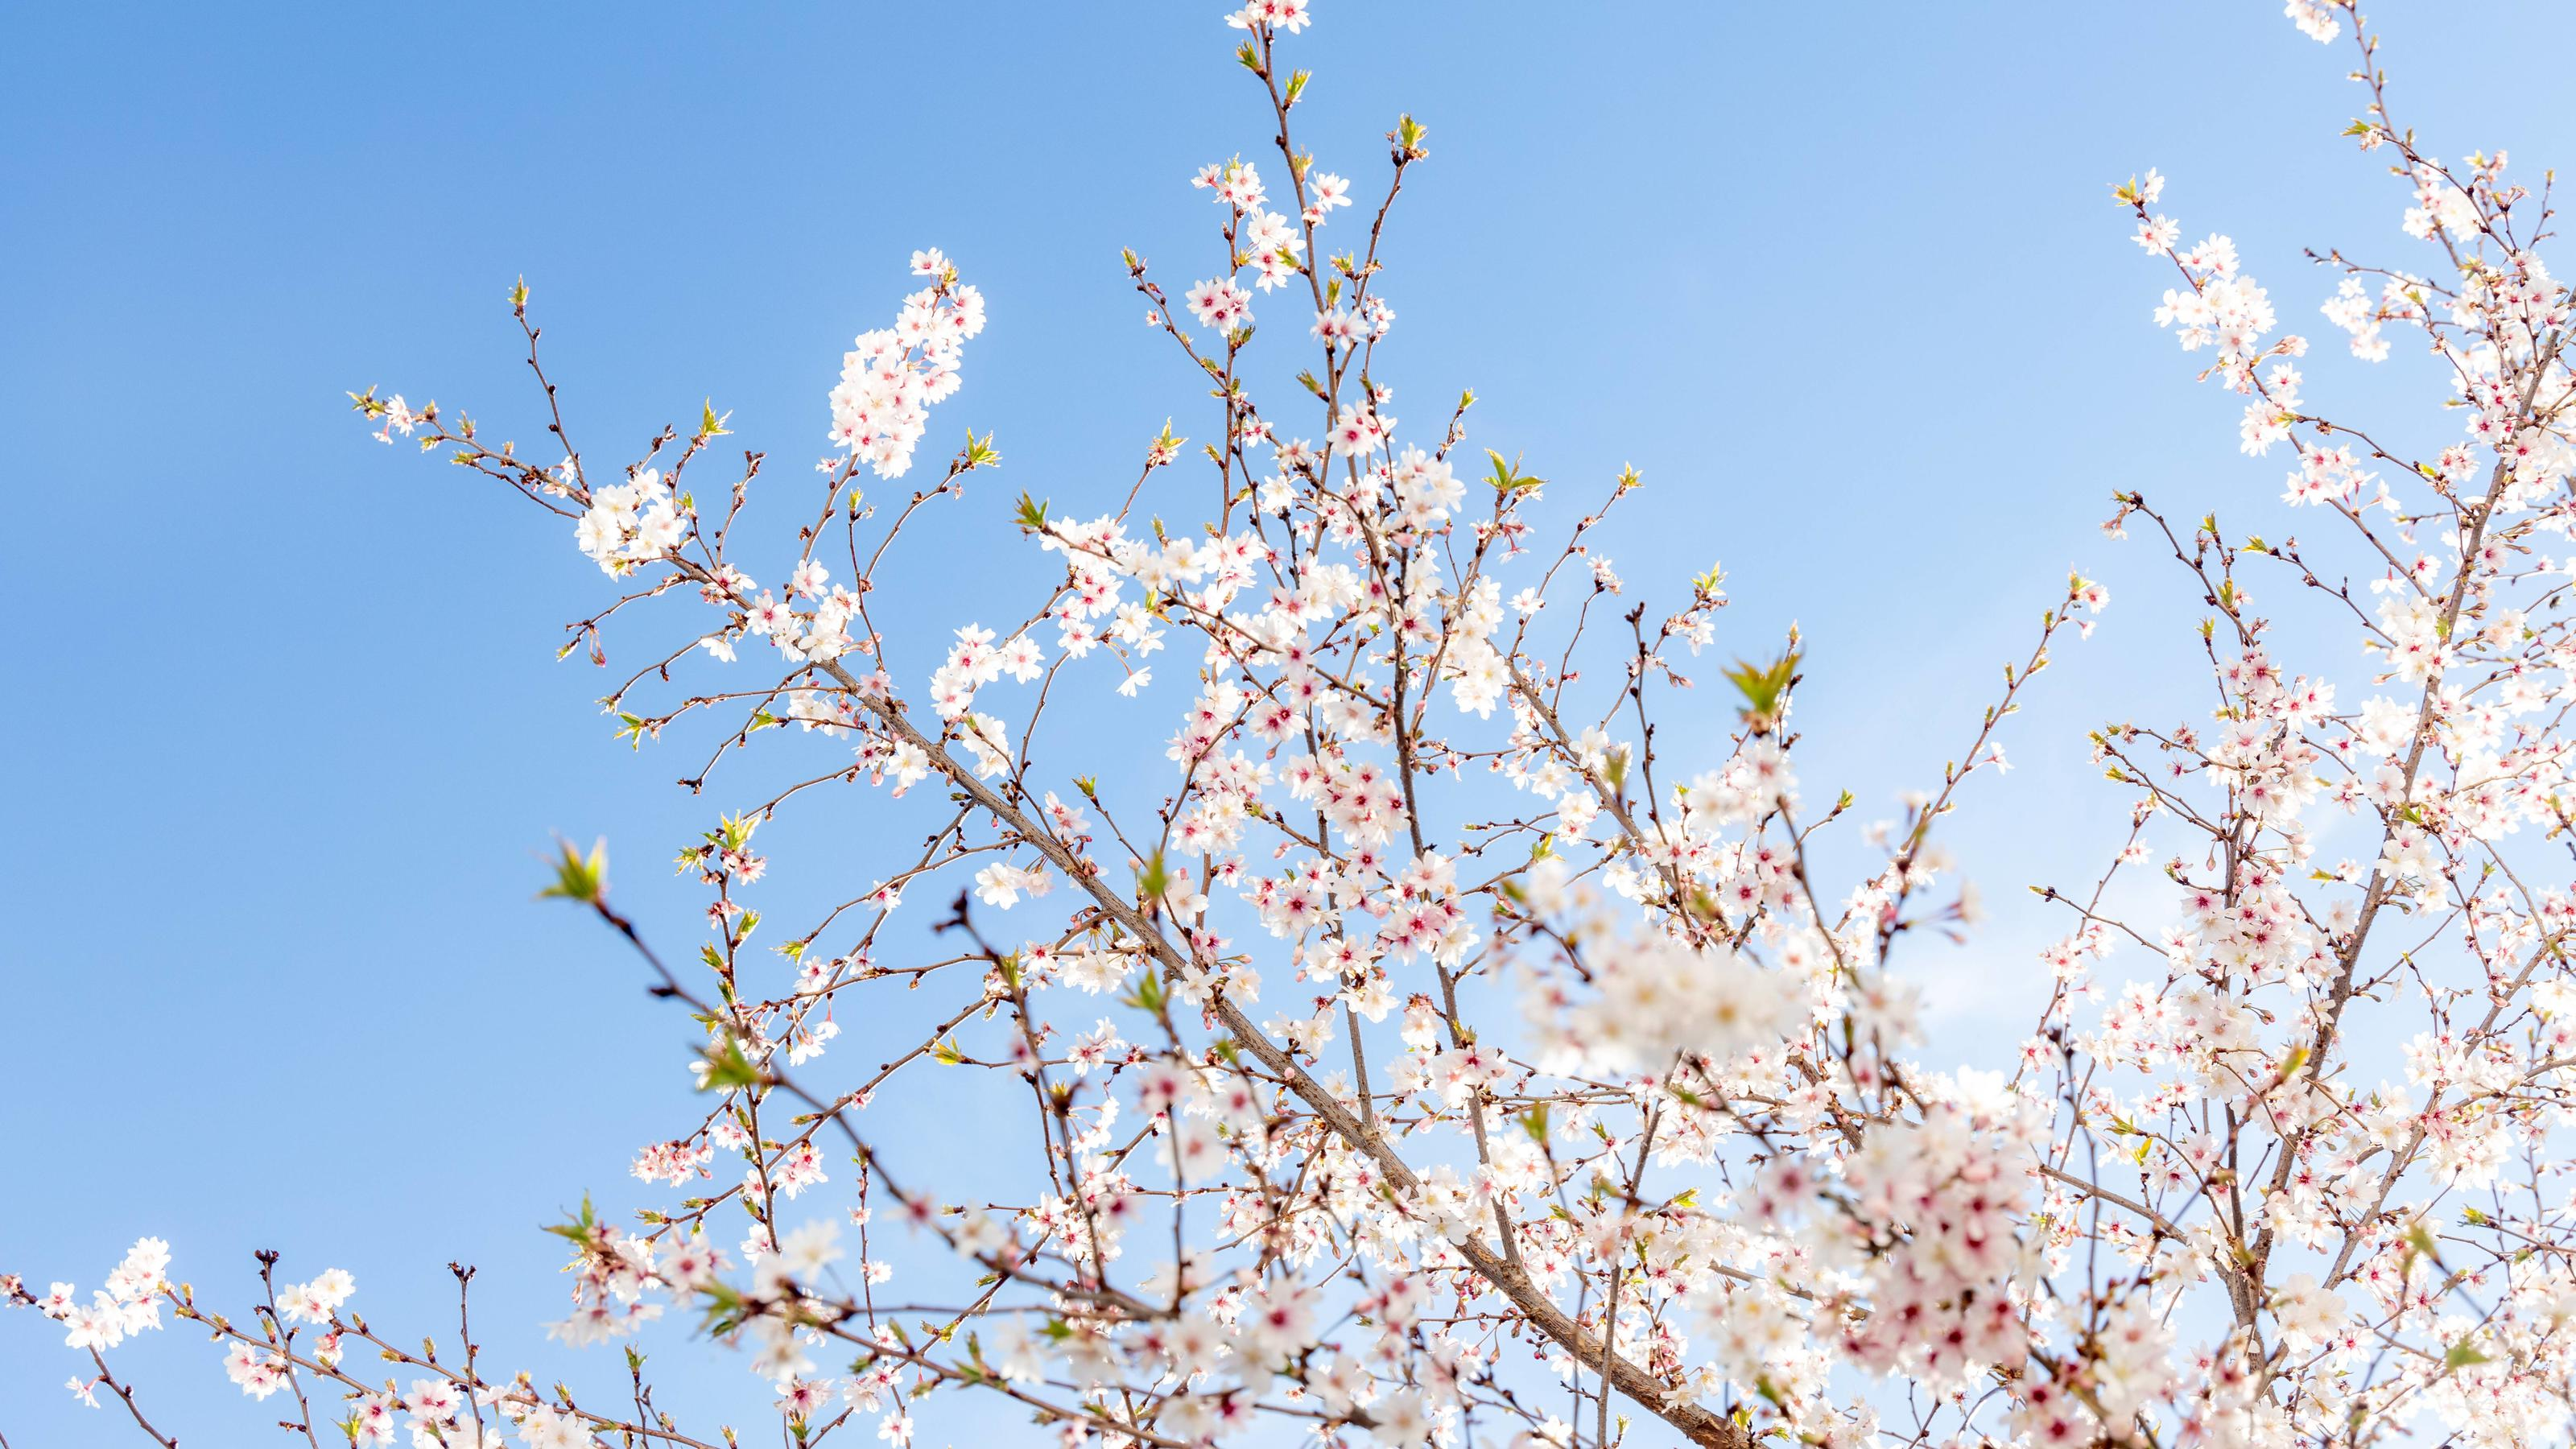 Sonniges Frühlingswetter 22.03.2019, Oberursel (Hessen): Eine Zierkirsche blüht bei Sonnenschein vor blauem Himmel., Oberursel Deutschland *** Sunny spring weather 22 03 2019 Oberursel Hessen An ornamental cherry blossoms in sunshine against a blue s